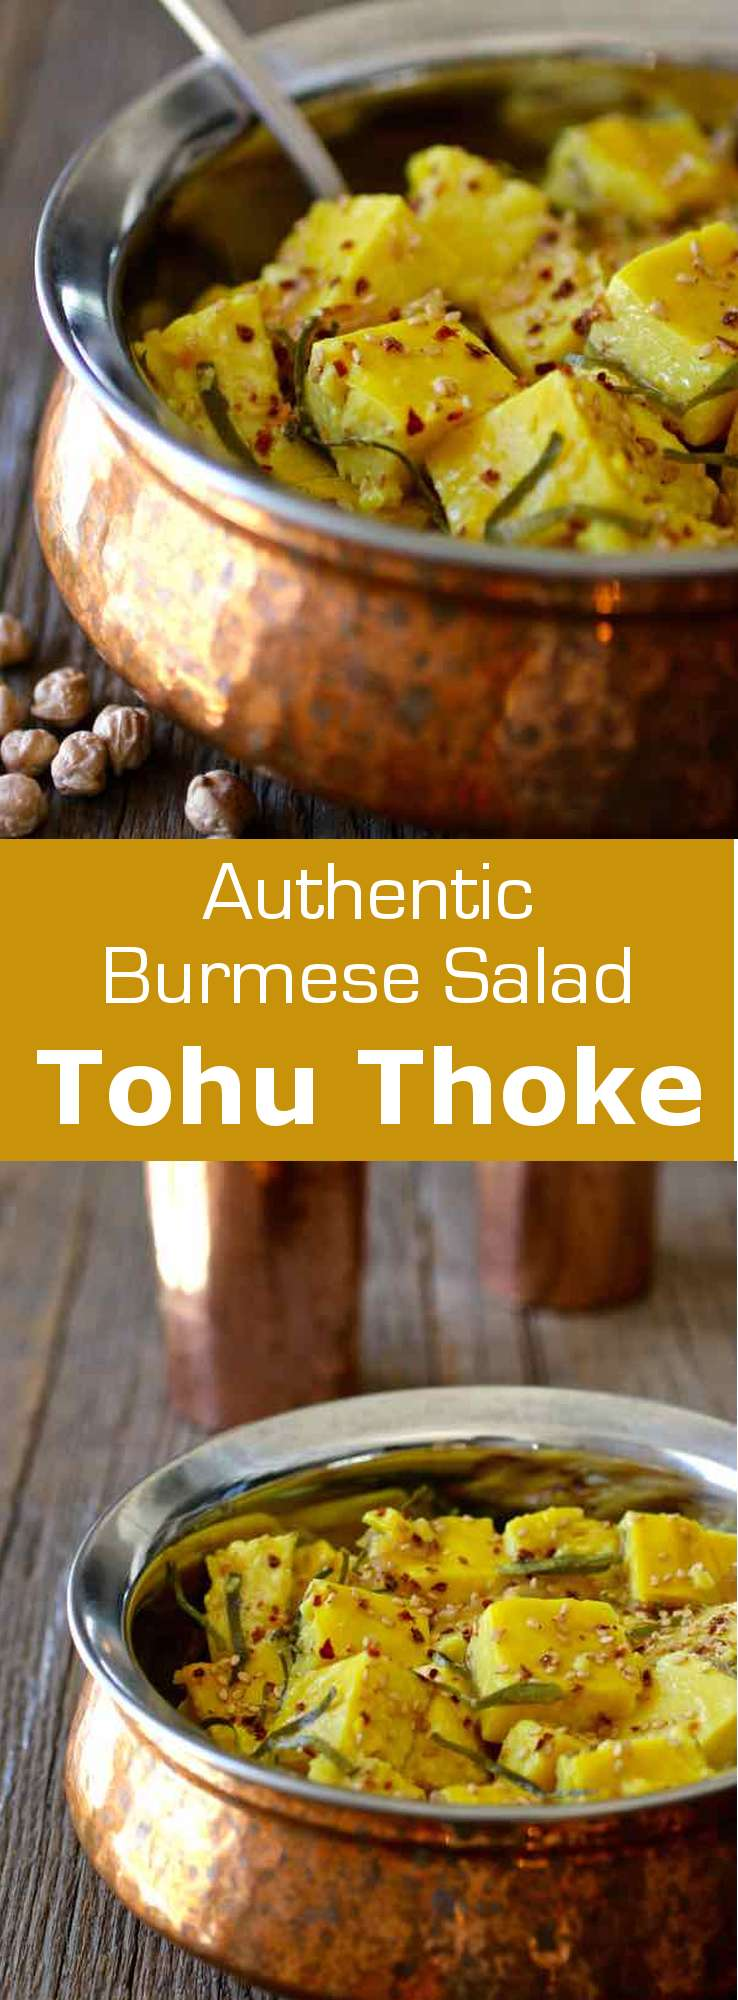 Chickpea tofu salad (tohu thoke) is a traditional Burmese salad that is prepared with chickpea-based tofu and a pungent and aromatic dressing. #Burma #Burmese #Myanmar #BurmeseCuisine #BurmeseFood #BurmeseRecipe #Salad #BurmeseSalad #WorldCuisine #196flavors